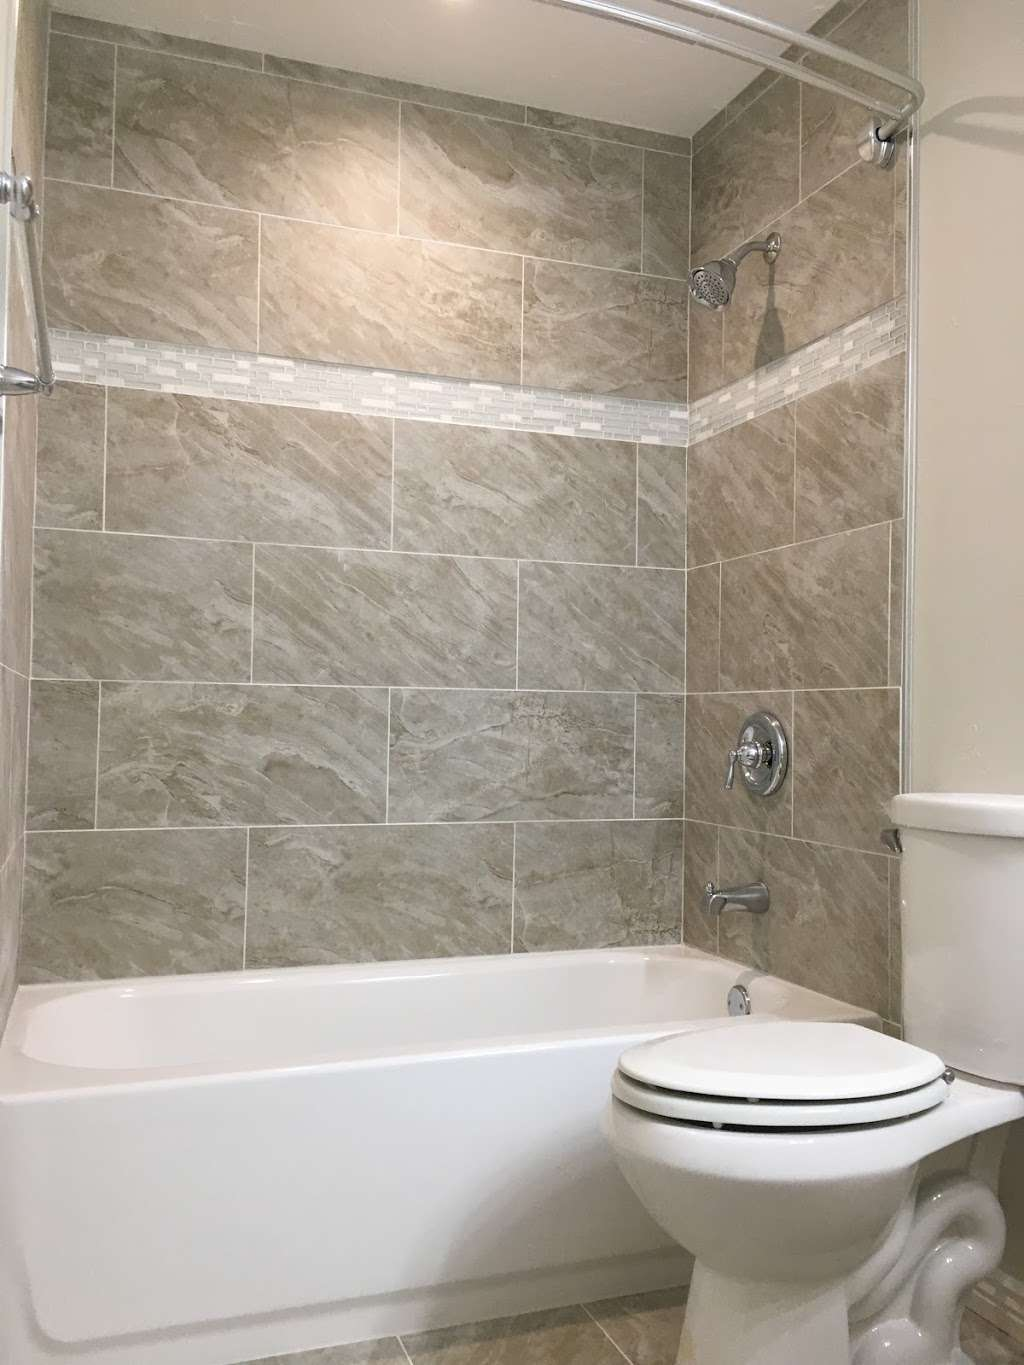 Wellspring Home Services - painter    Photo 7 of 9   Address: 4412 E Mulberry St Lot 288, Fort Collins, CO 80524, USA   Phone: (719) 659-2759